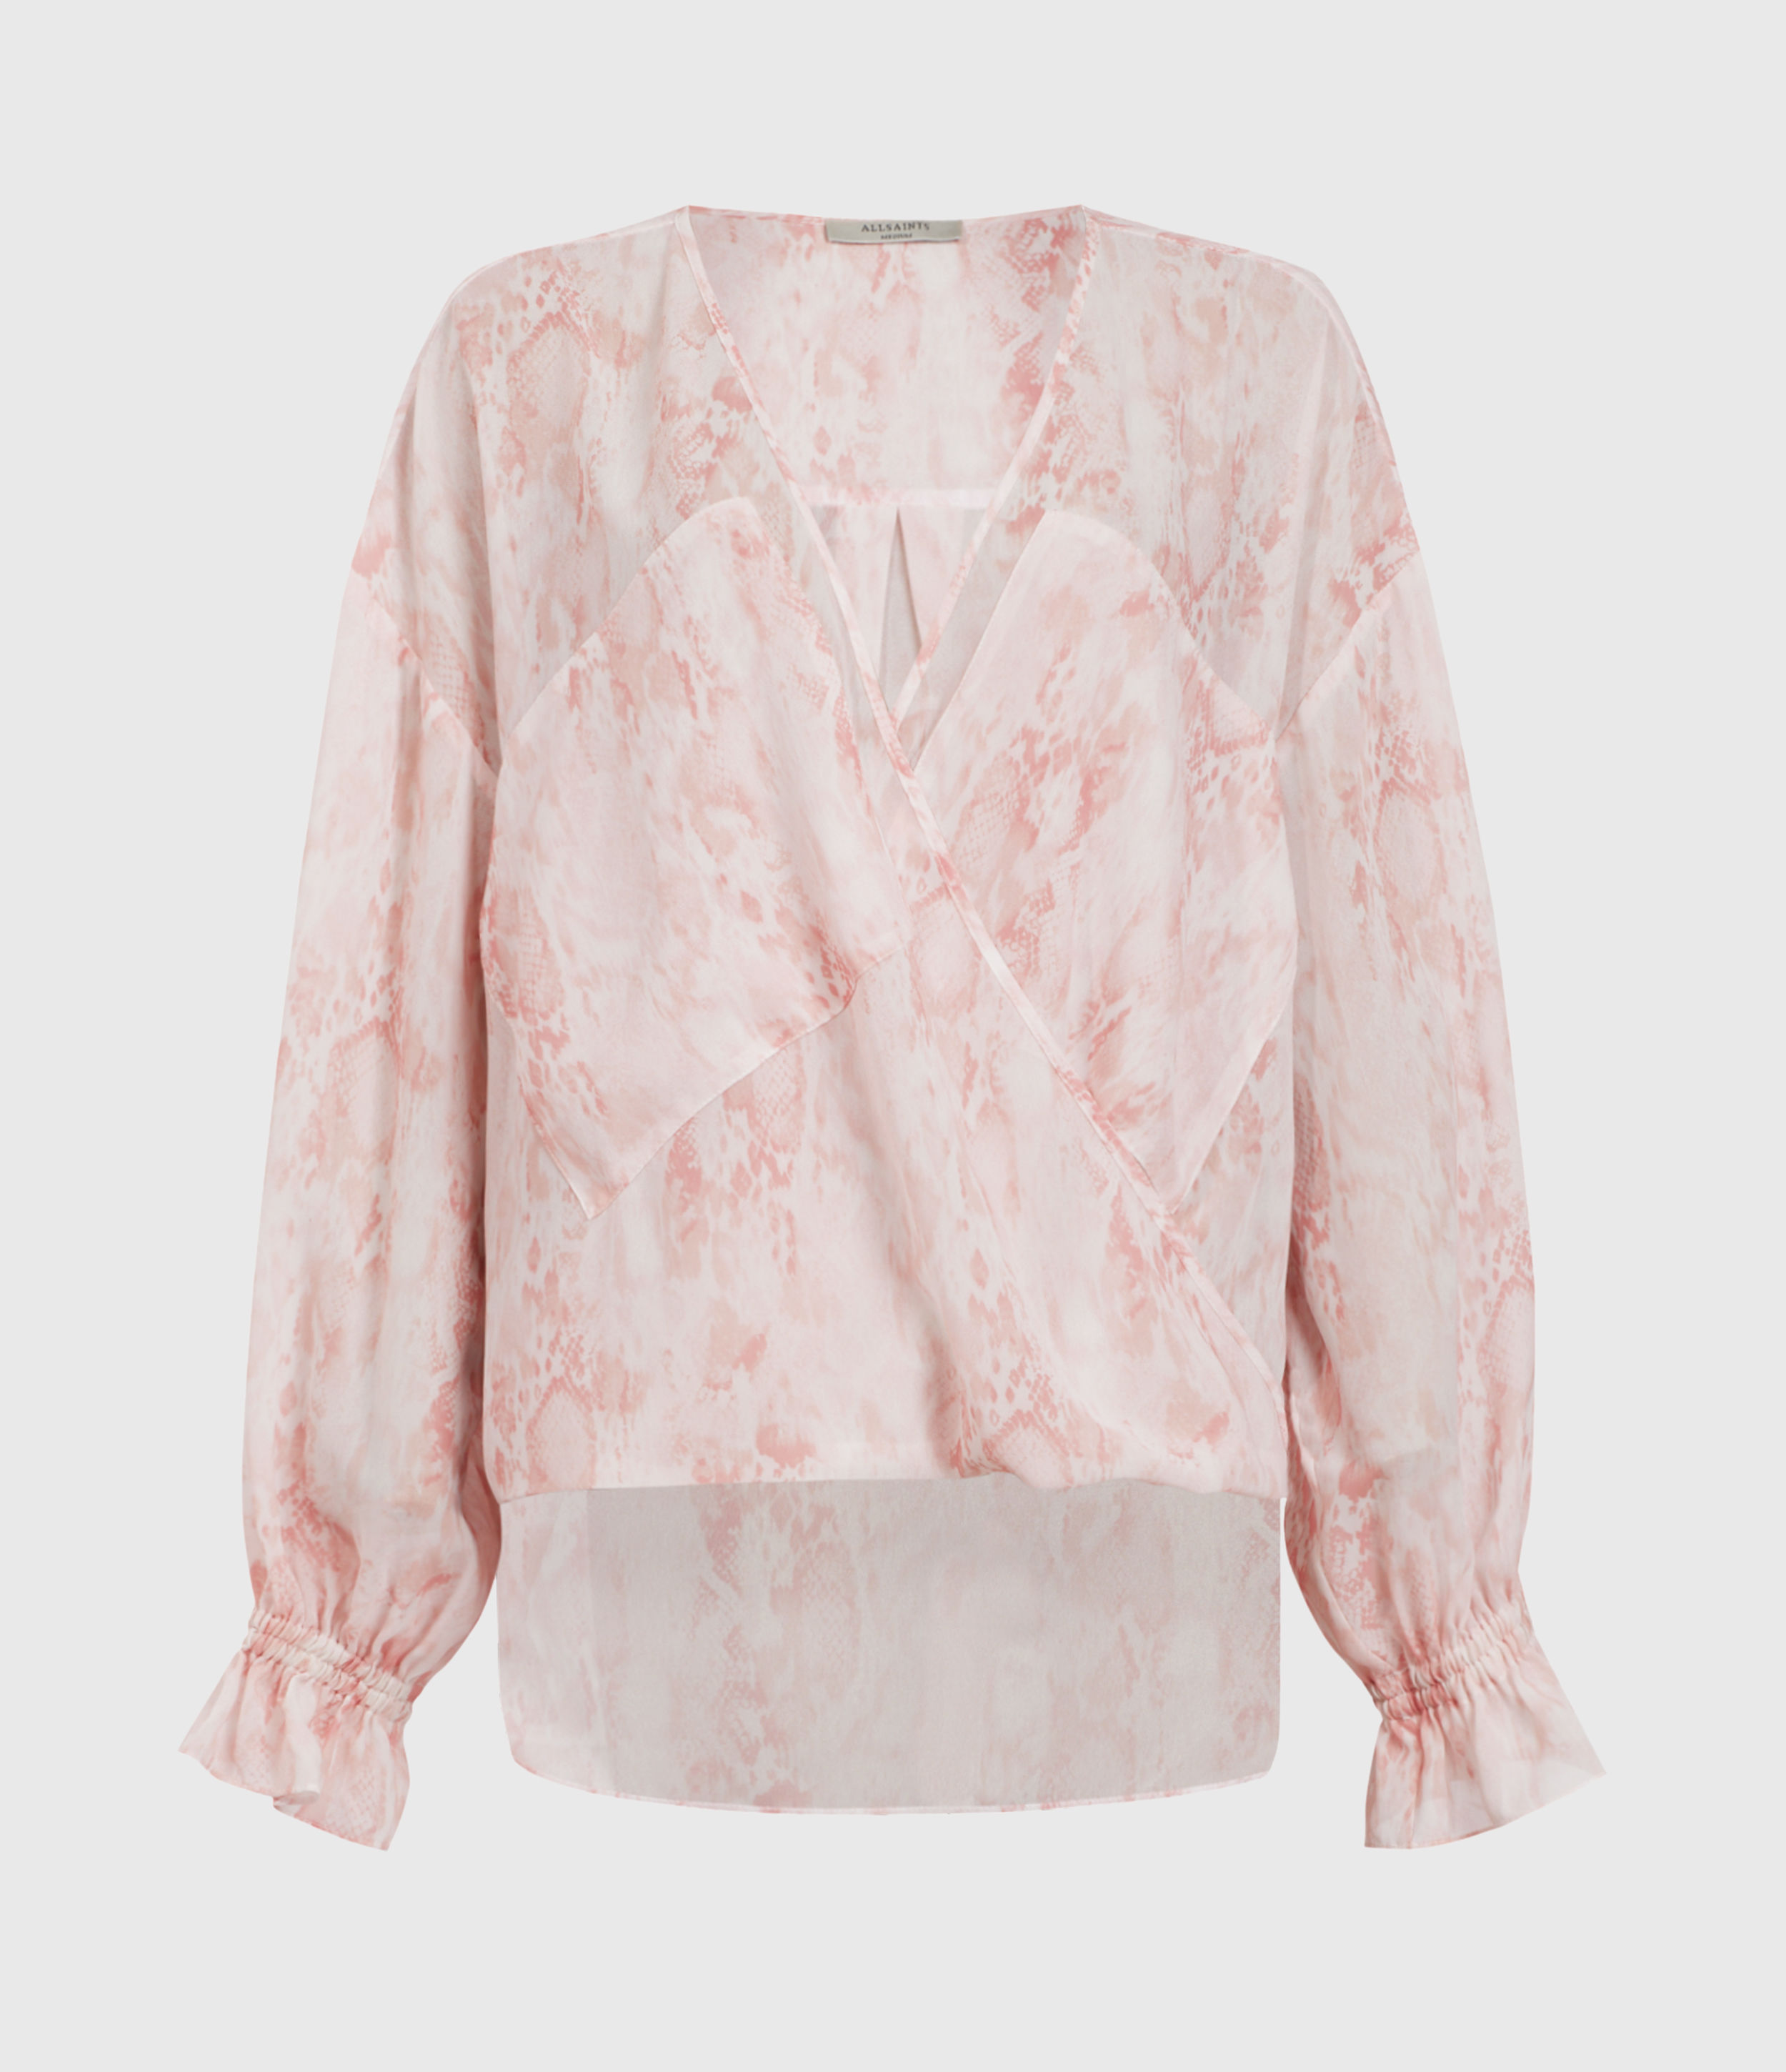 AllSaints Women's Snakeskin Print Relaxed Fit Penny Masala Top, Pink and White, Size: 10